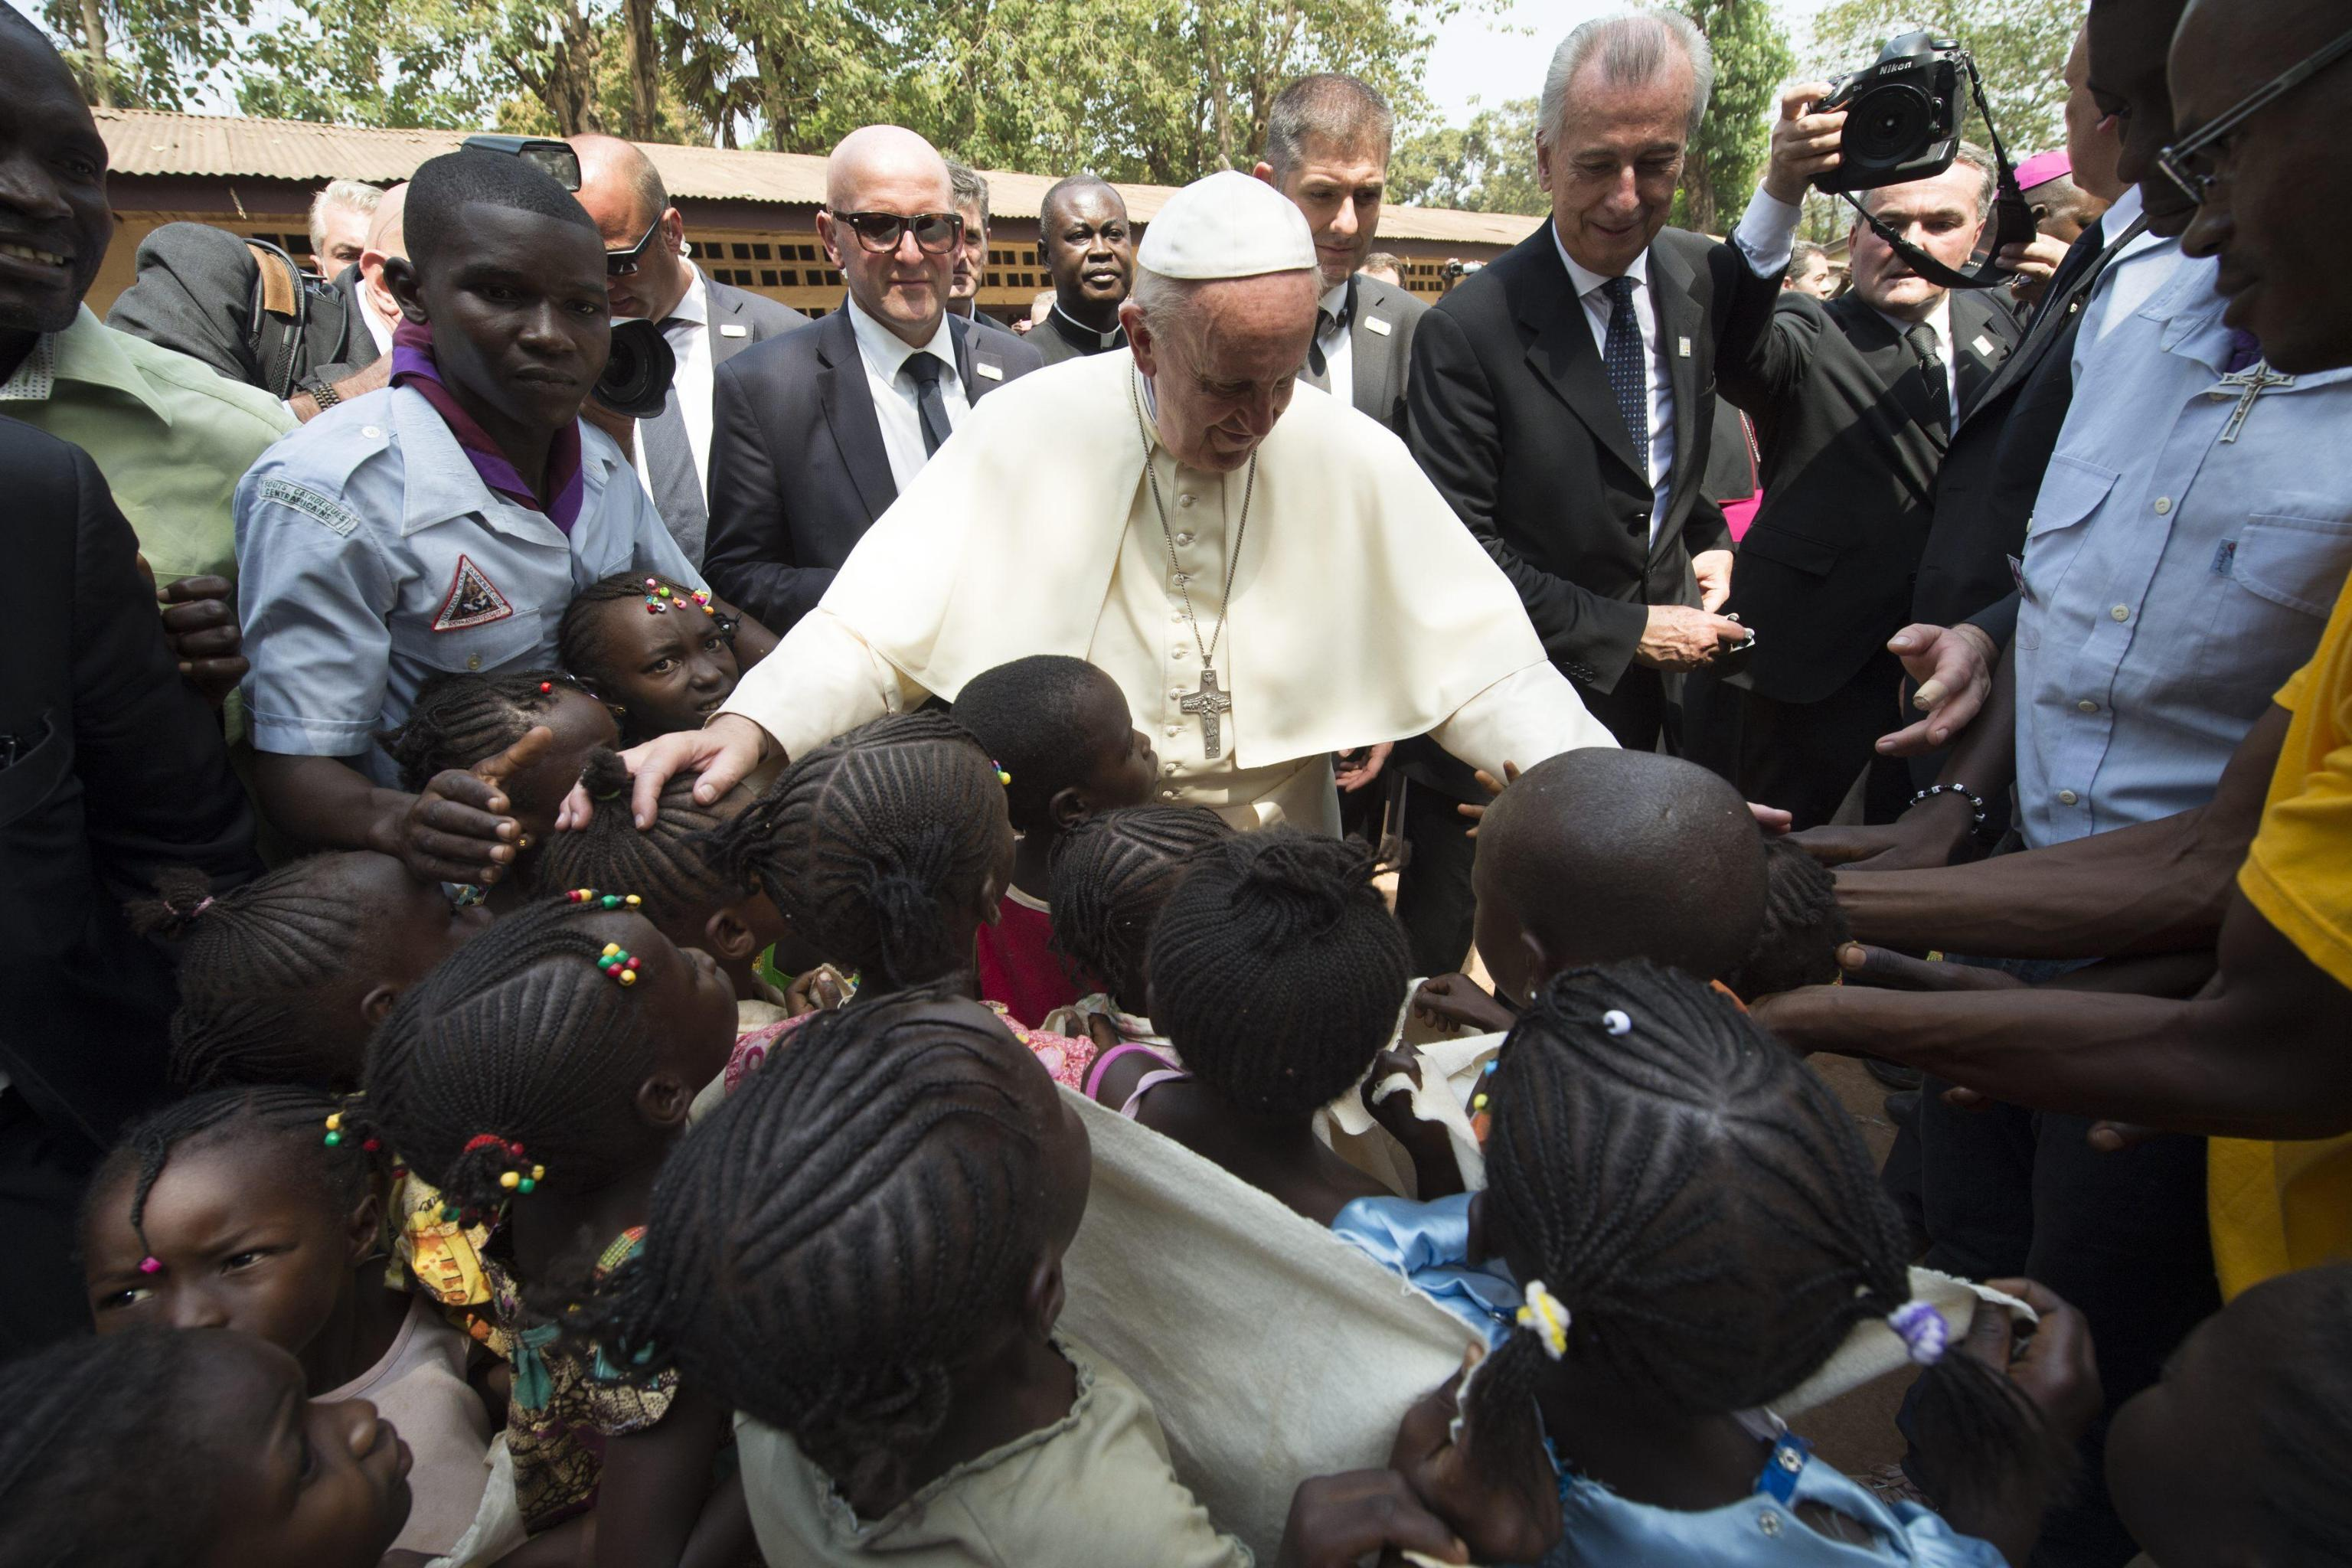 Pope Francis during a visit at a refugee camp in Bangui